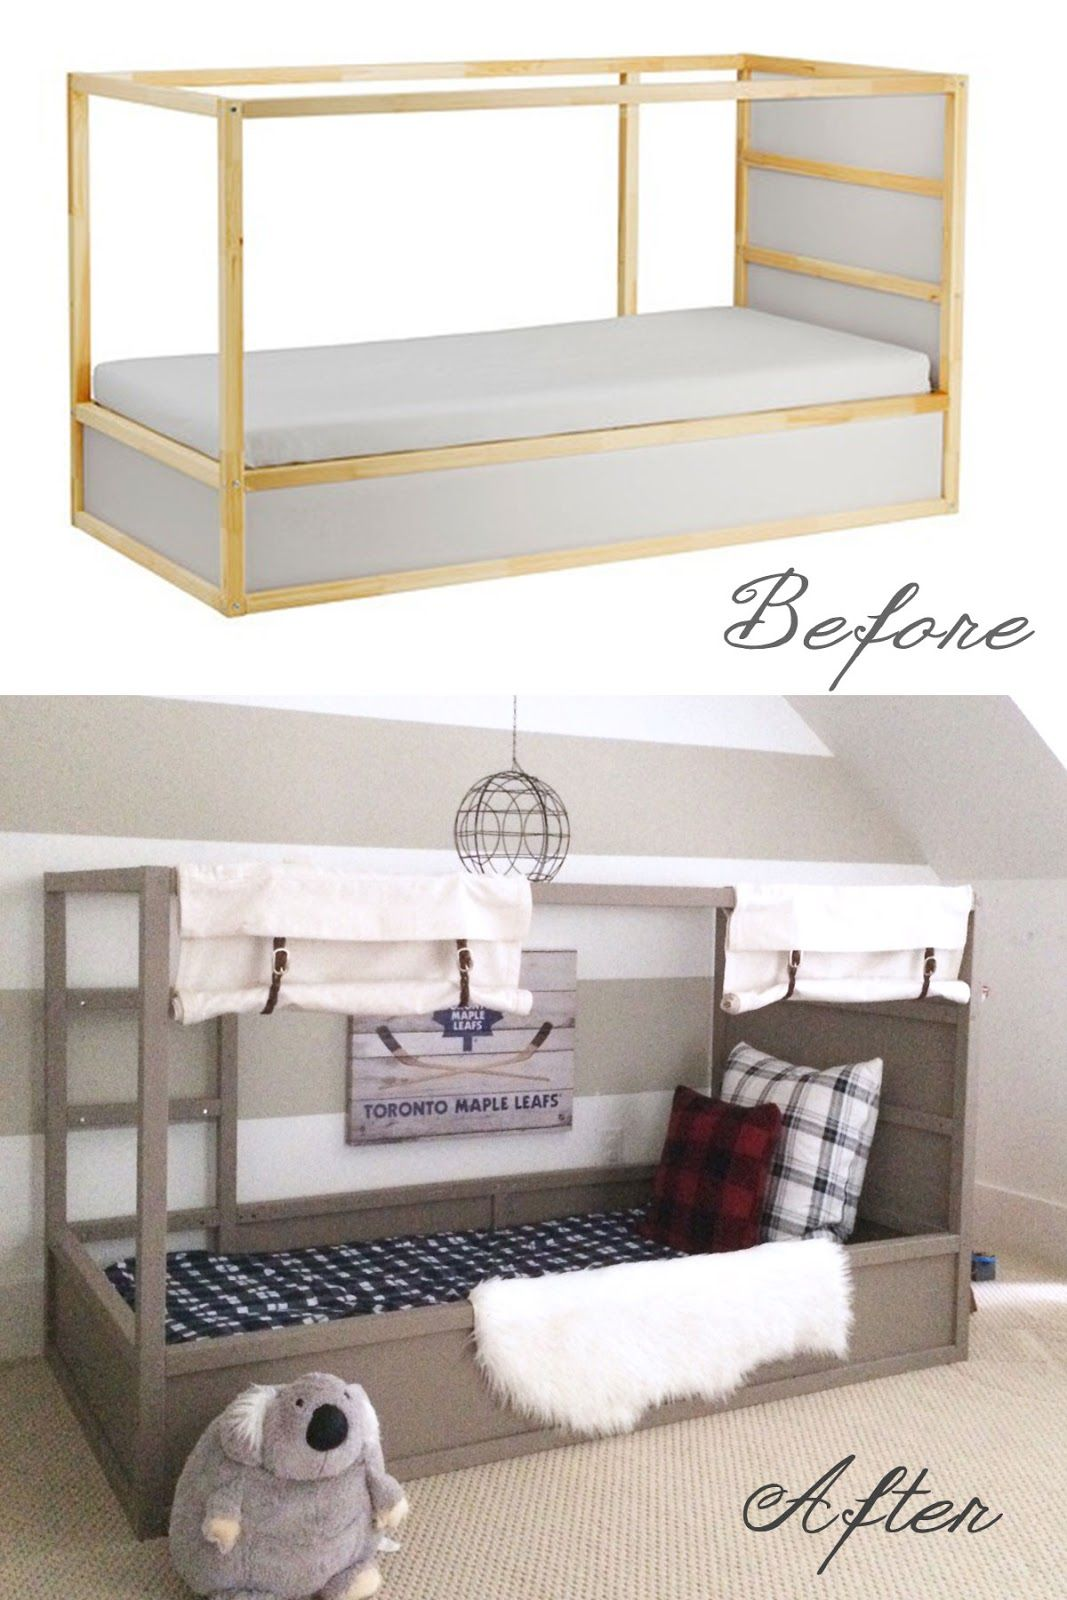 ikea kura bed hack option 2 with diy ball kinderzimmer ihr stil und kinderbetten. Black Bedroom Furniture Sets. Home Design Ideas